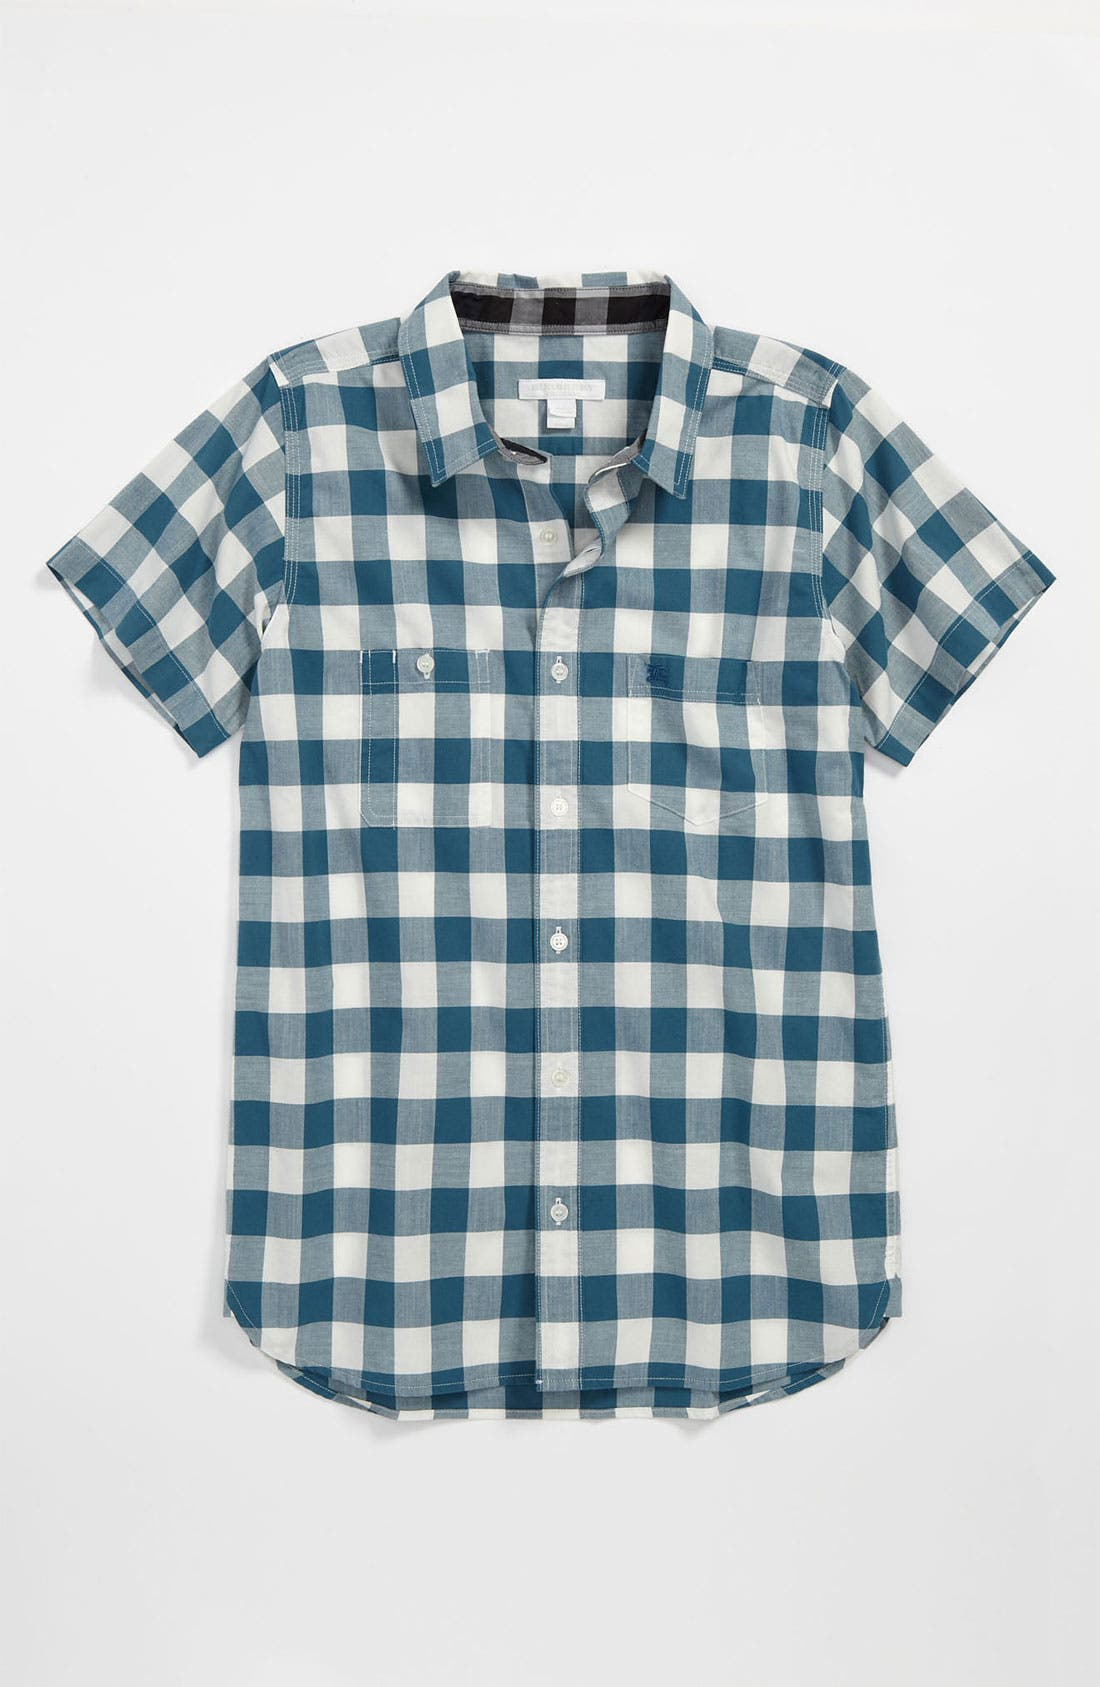 Alternate Image 1 Selected - Burberry 'Mini Rex' Woven Shirt (Little Boys & Big Boys)